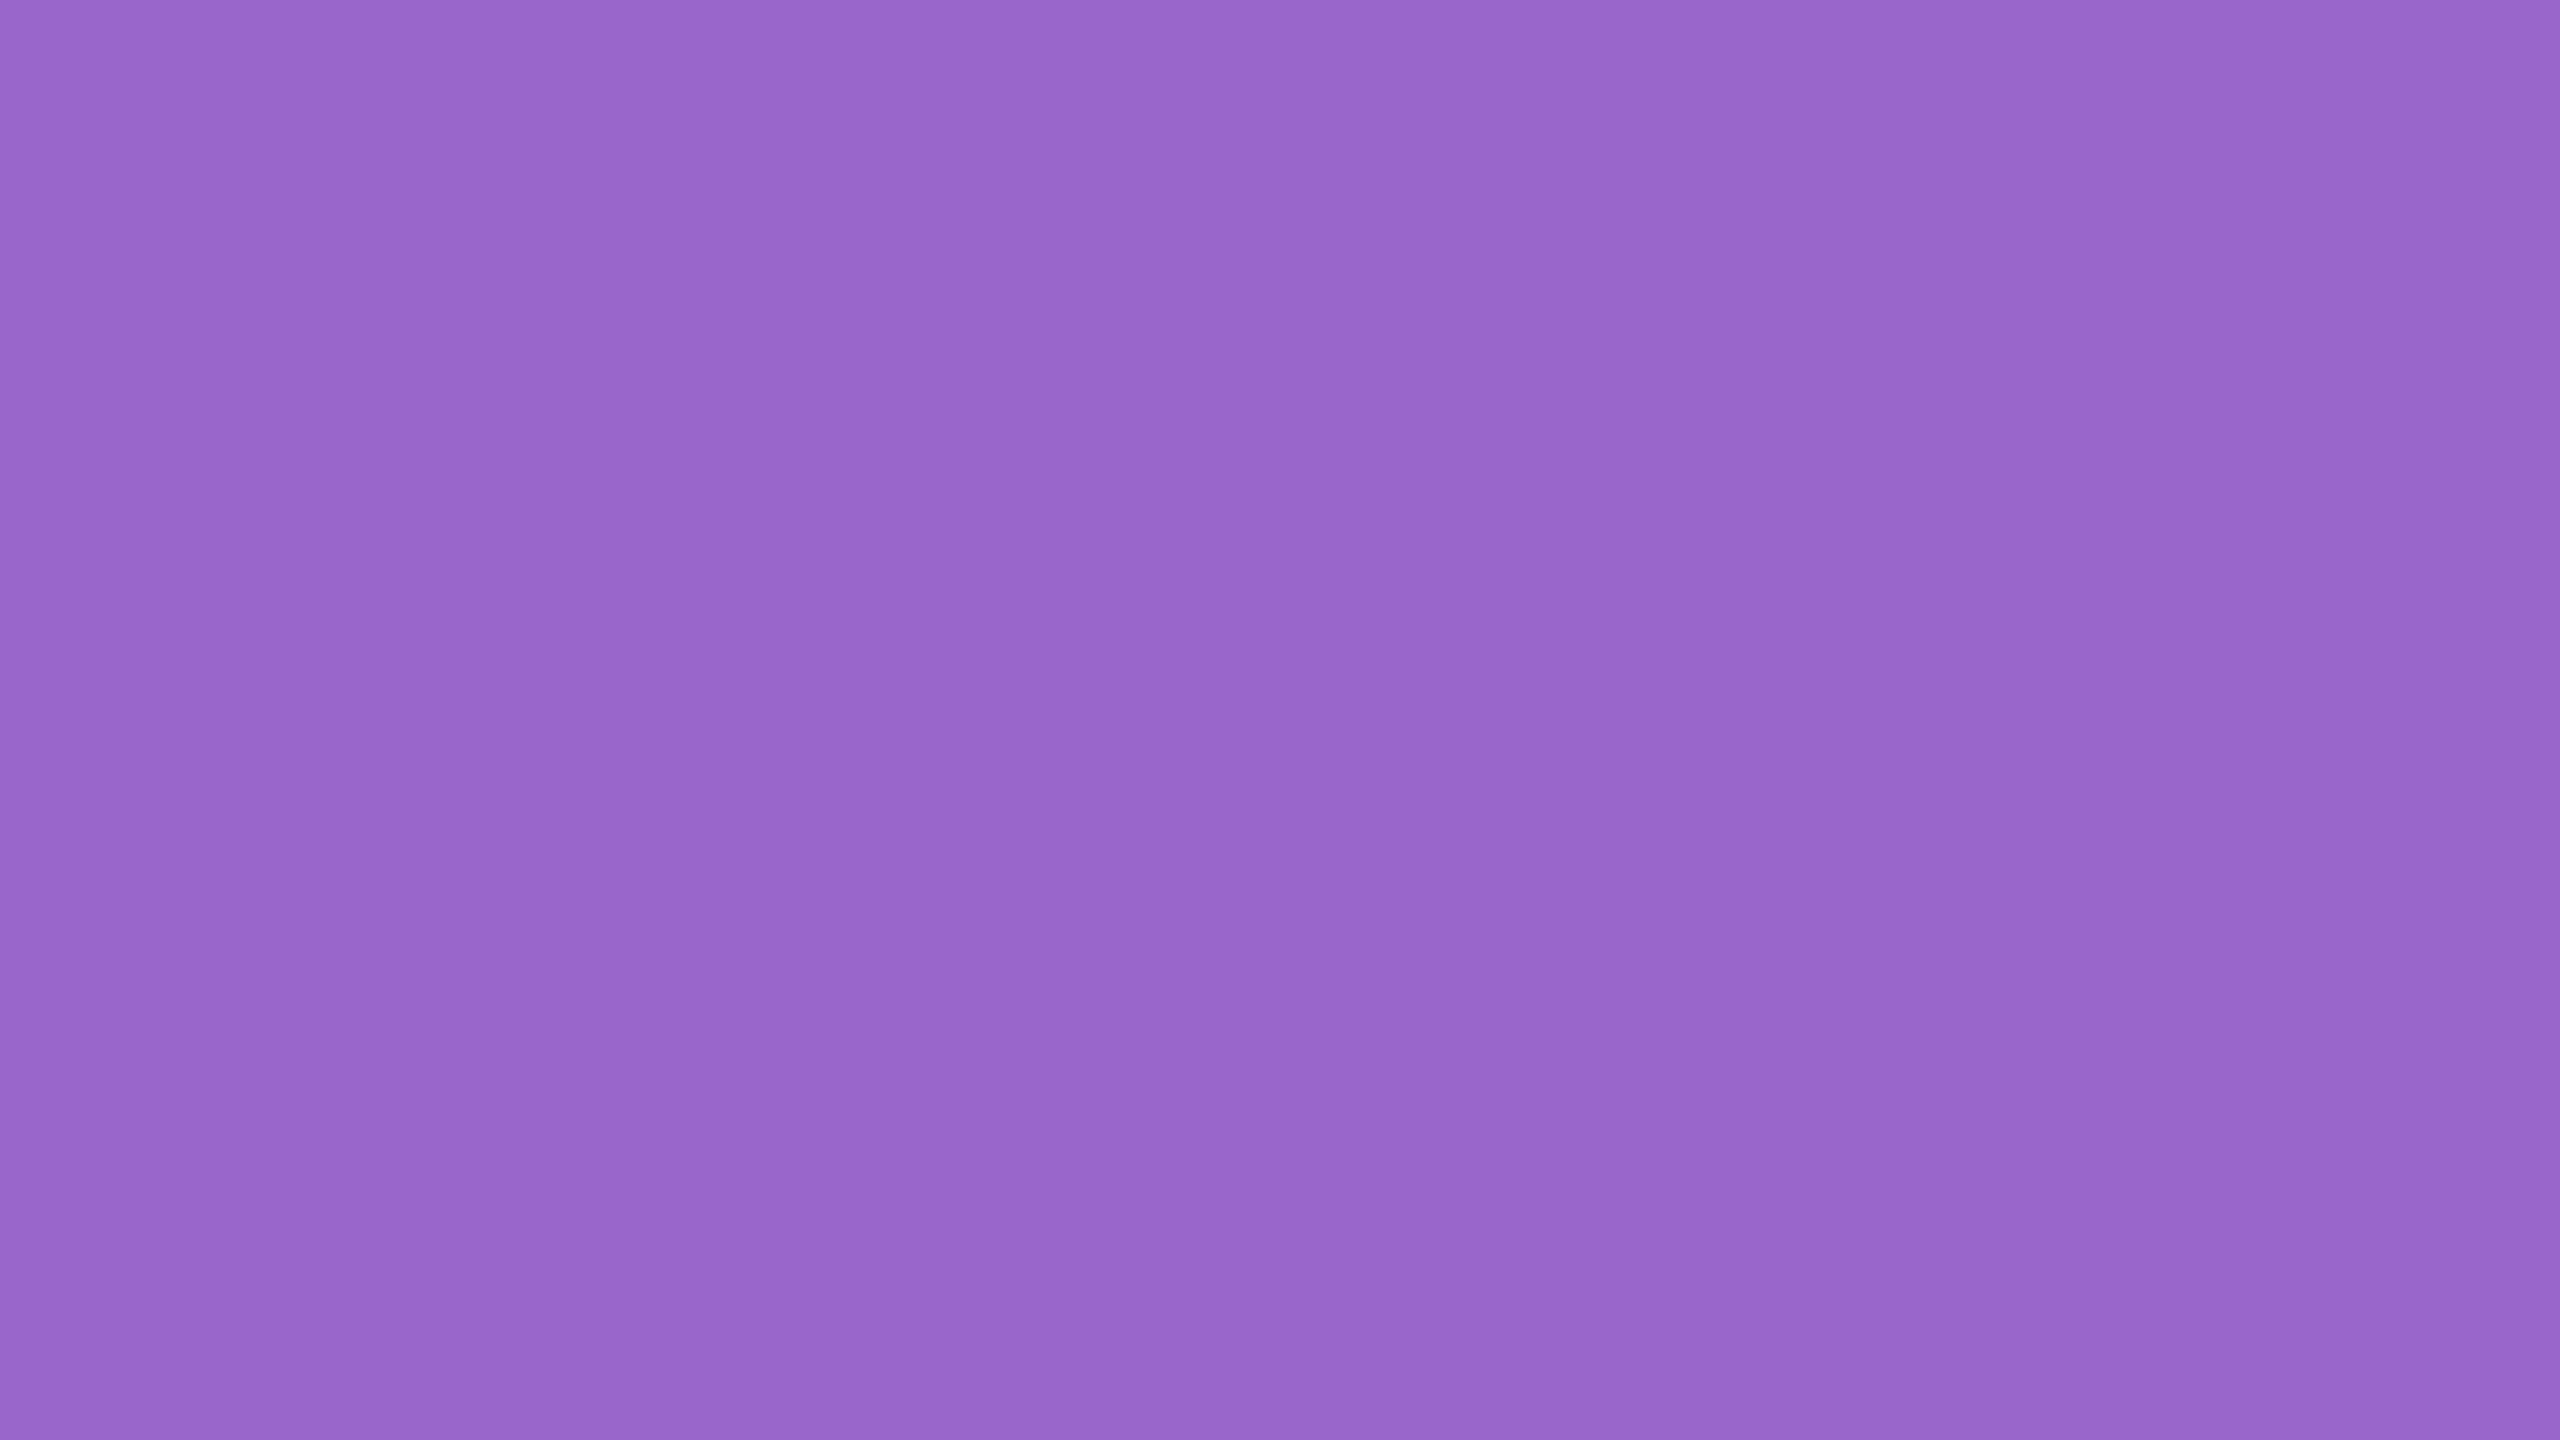 2560x1440 Amethyst Solid Color Background